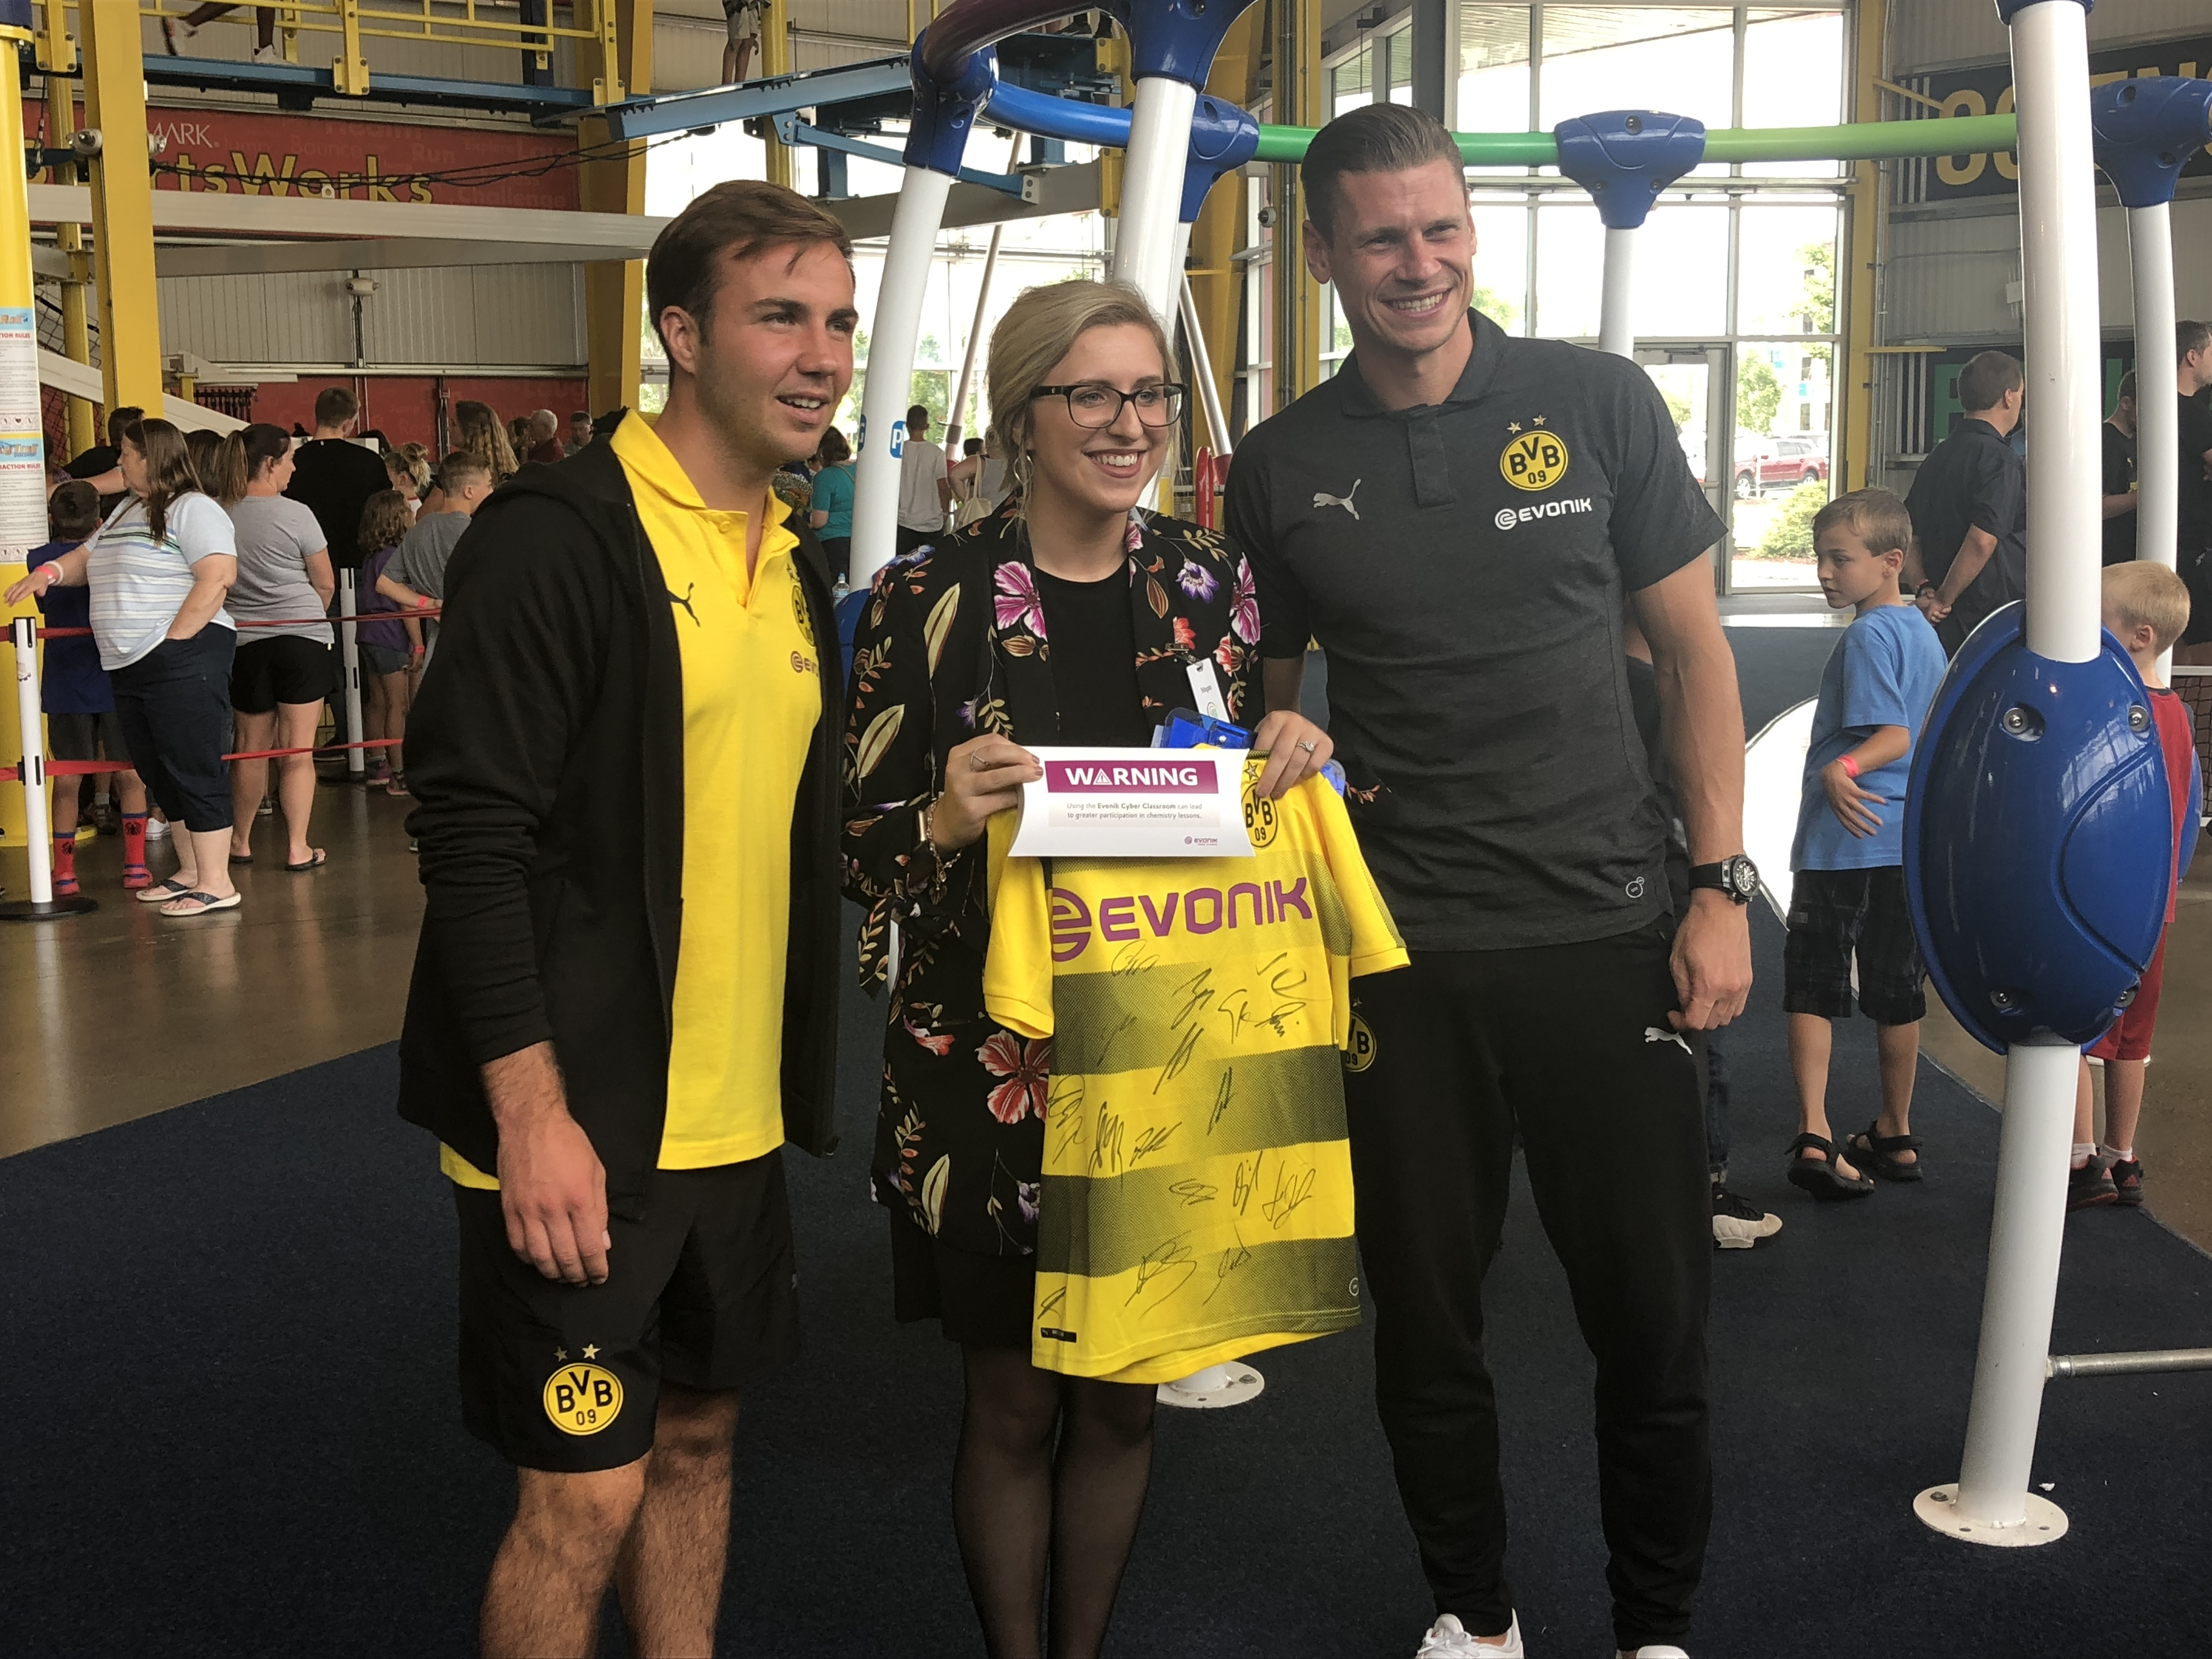 Borussia Dortmund visits the Carnegie Science Center – The Northside